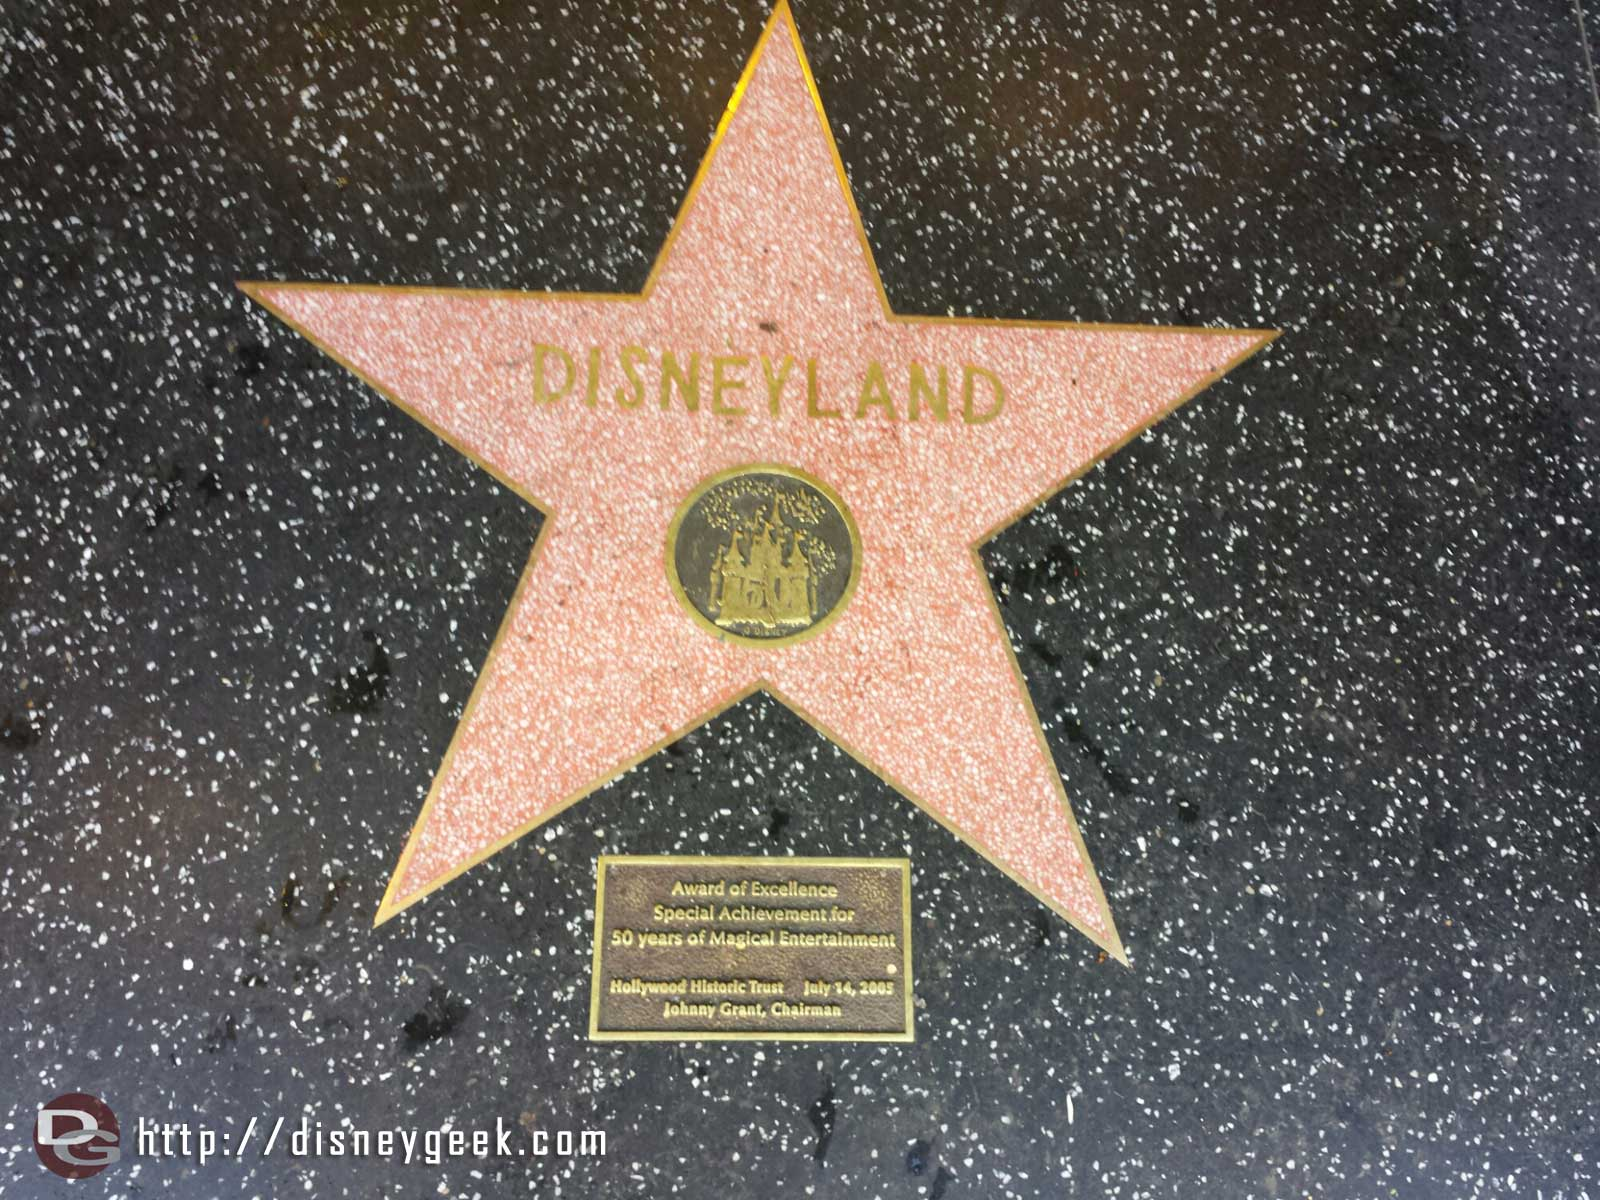 The #Disneyland star is at the entrance to the Studio Store